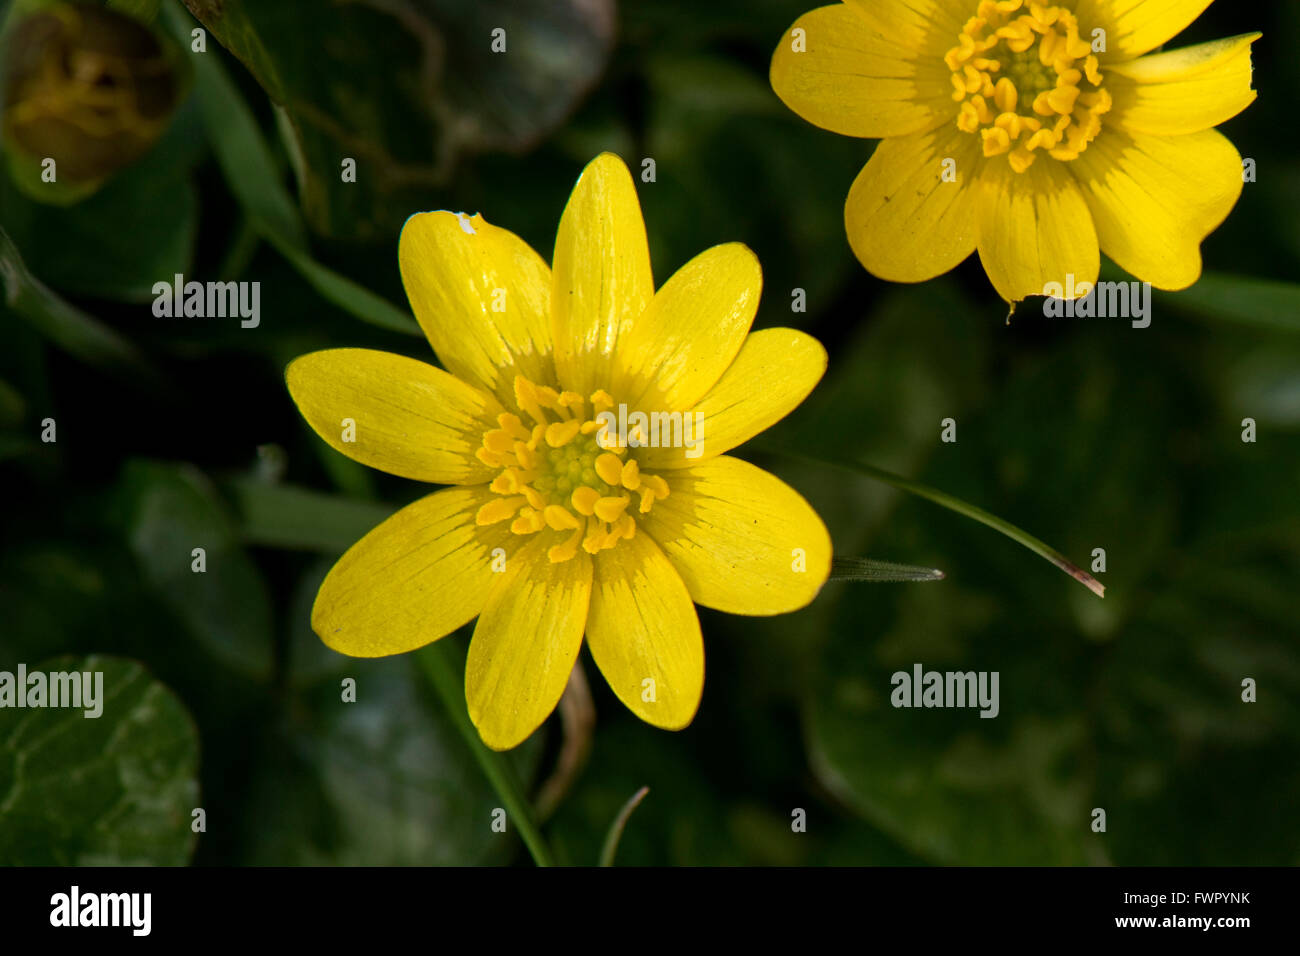 Lesser celandine, Ficaria verna, yellow, shiny flower on buttercup type plant in early spring, Berkshire, April - Stock Image